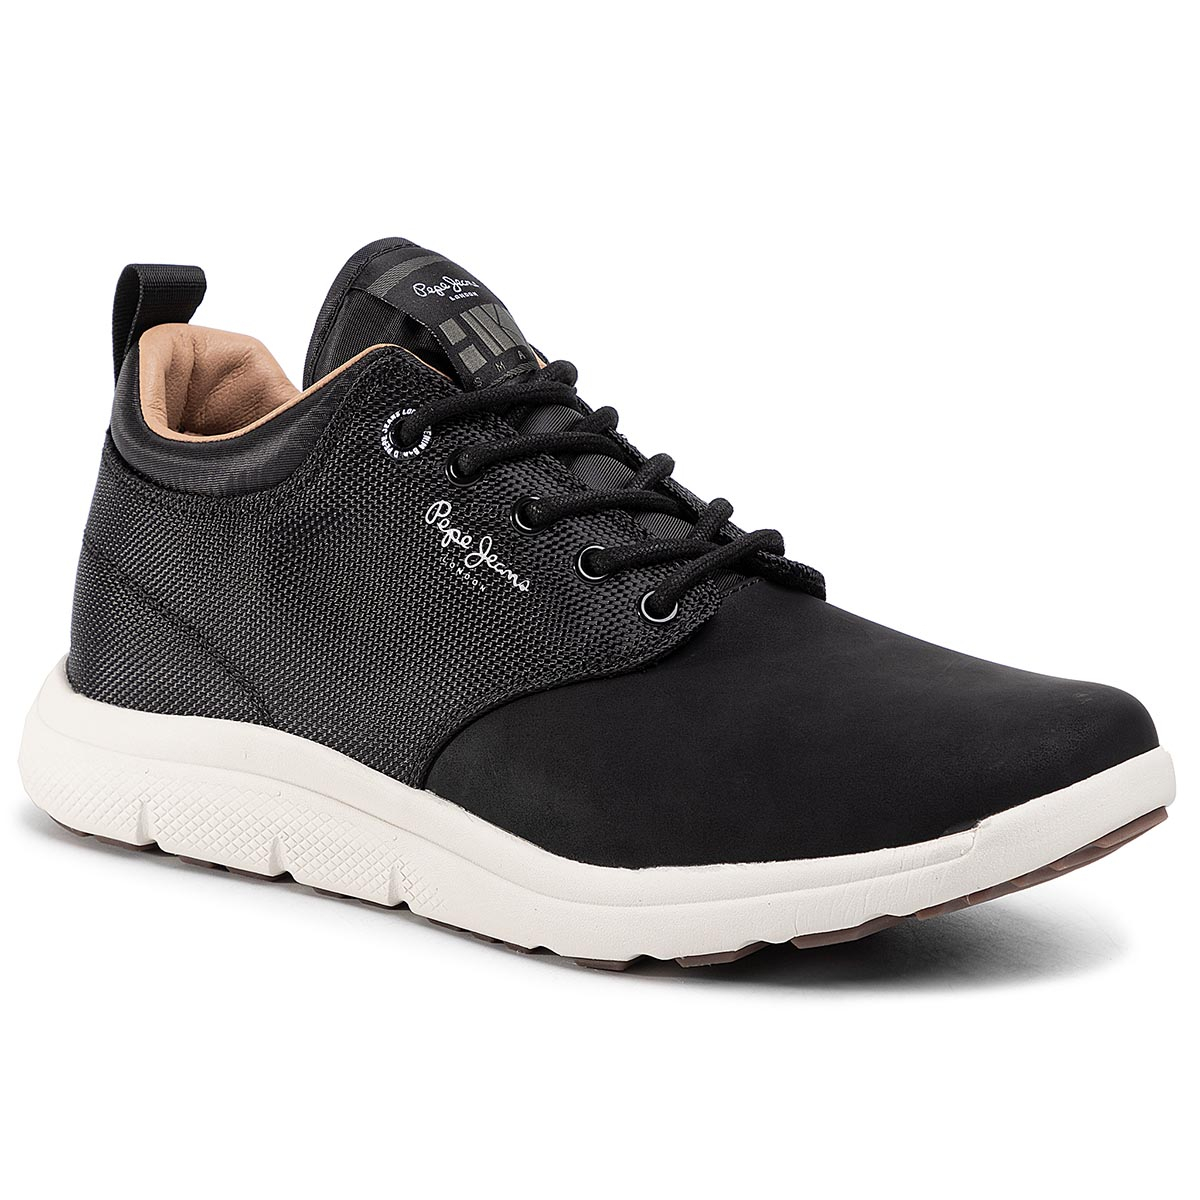 Sneakers Pepe Jeans - Hike Smart Boot Pms30566 Antracite 982 imagine